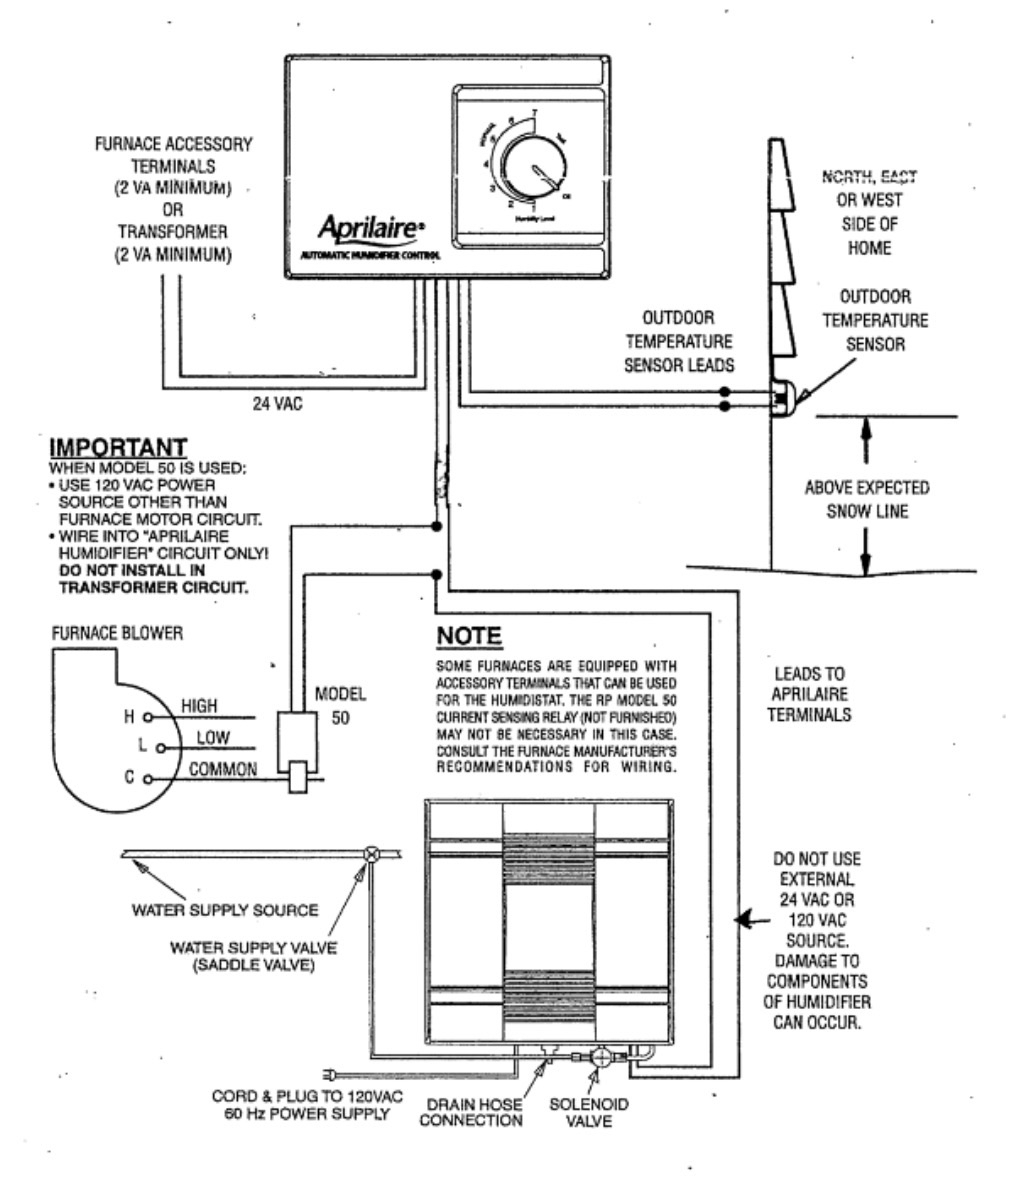 aprilaire 600 humidifier wiring diagram Download-aprilaire 600 wiring diagram Download Aprilaire Wiring Diagram 19 d 14-t